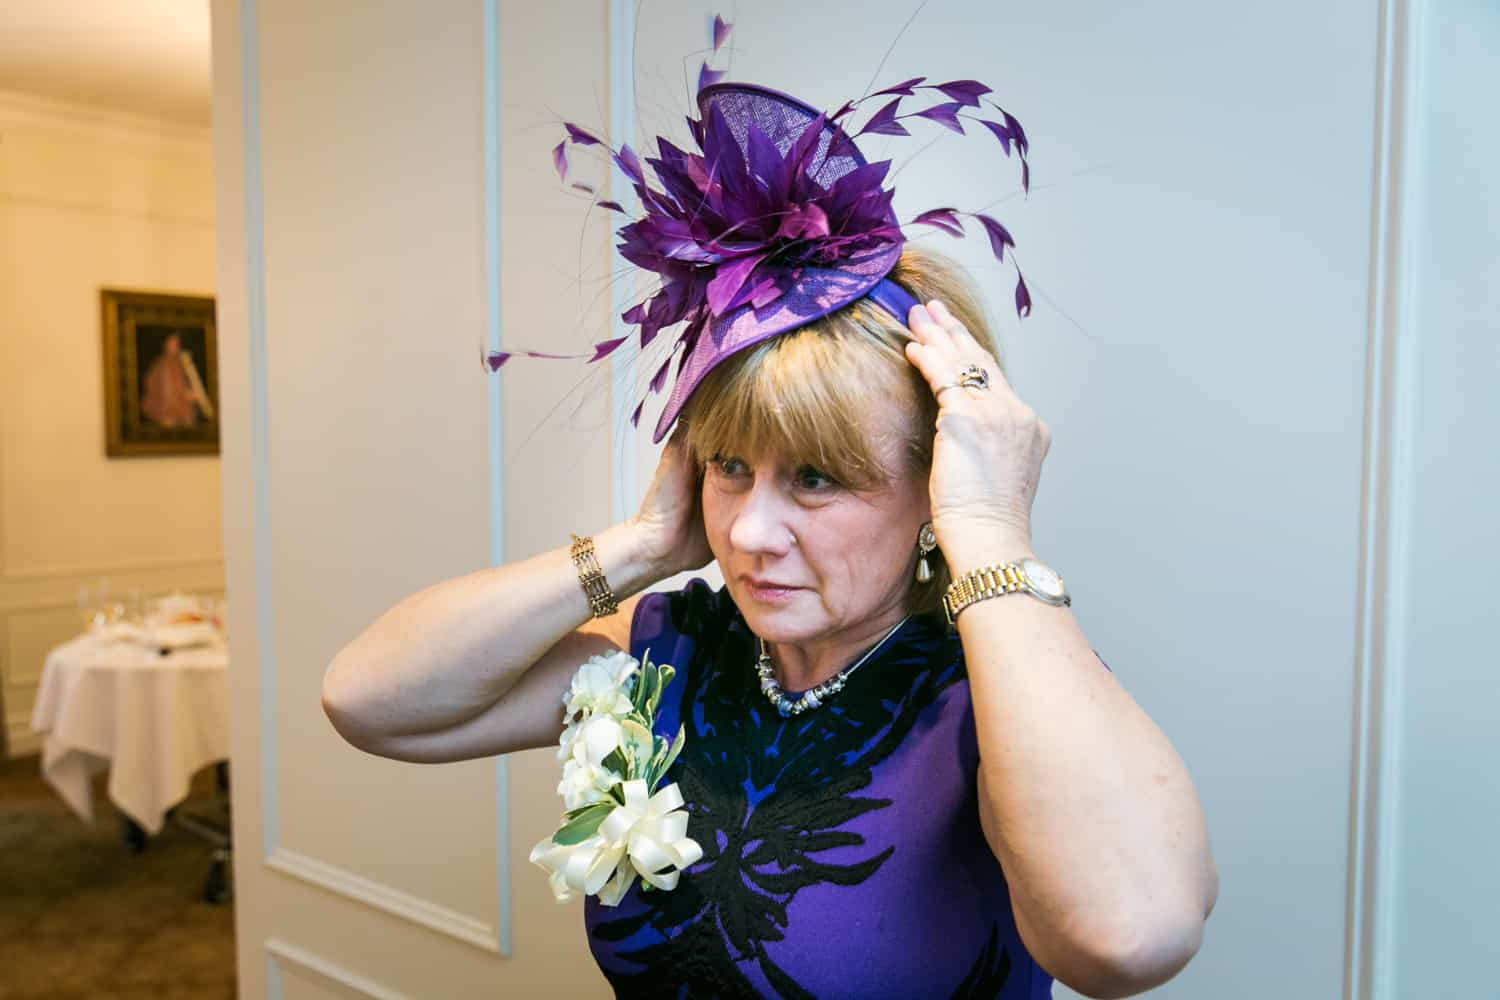 Woman adjusting purple hat before wedding